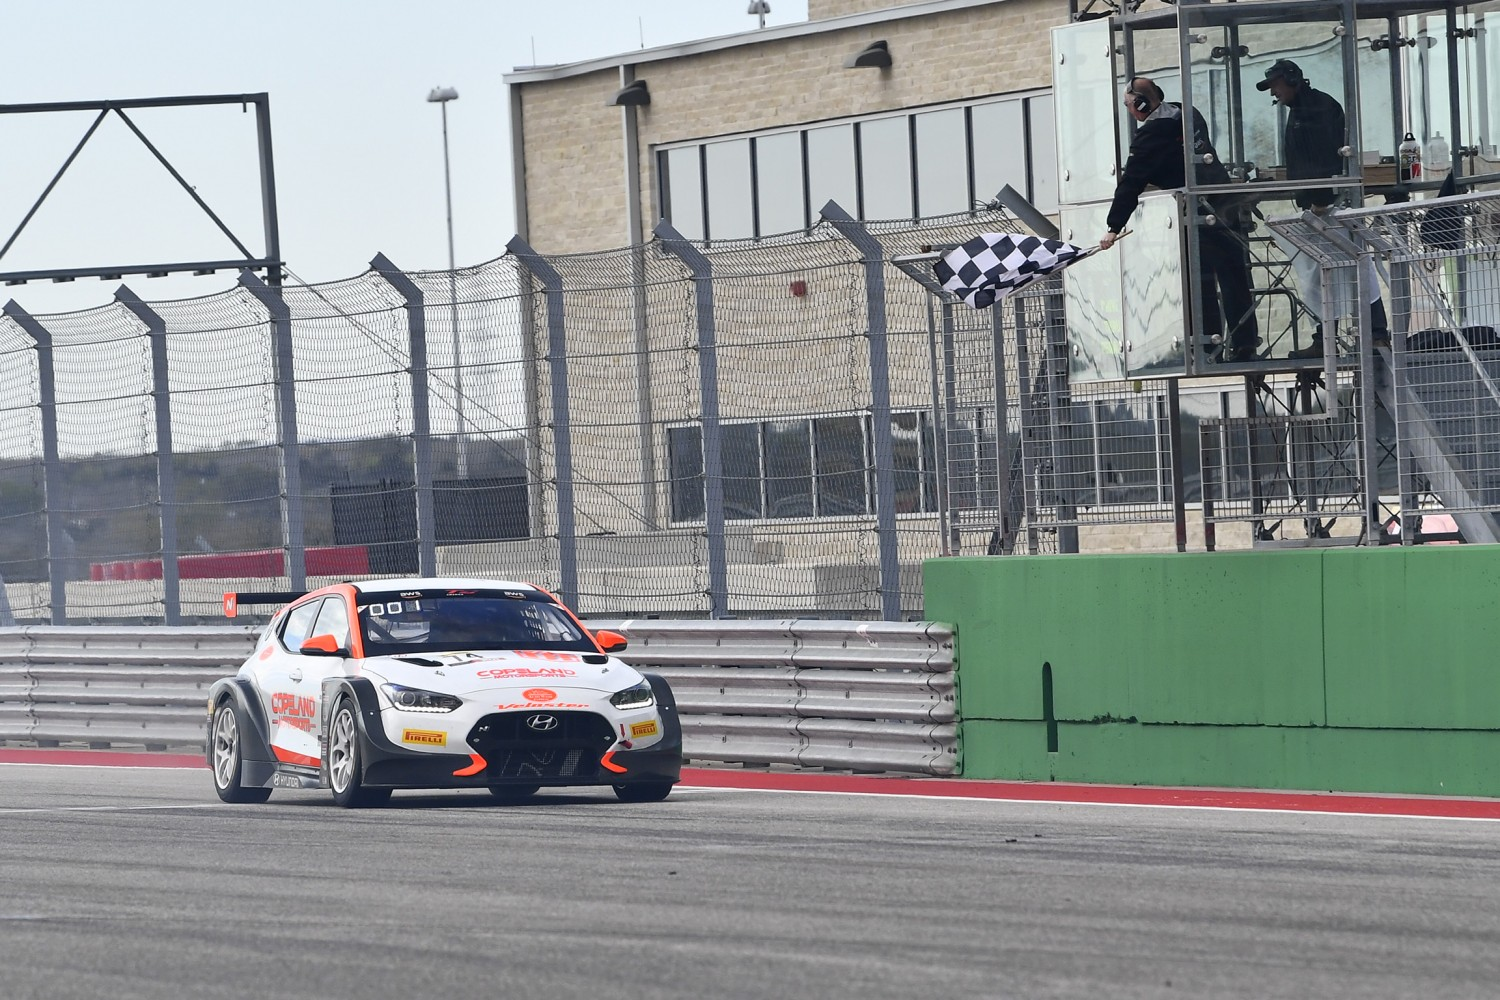 Maxson Wins TCR Race 1 at Circuit of the Americas; Clay Takes TC; Gonzalez Rules in TCA